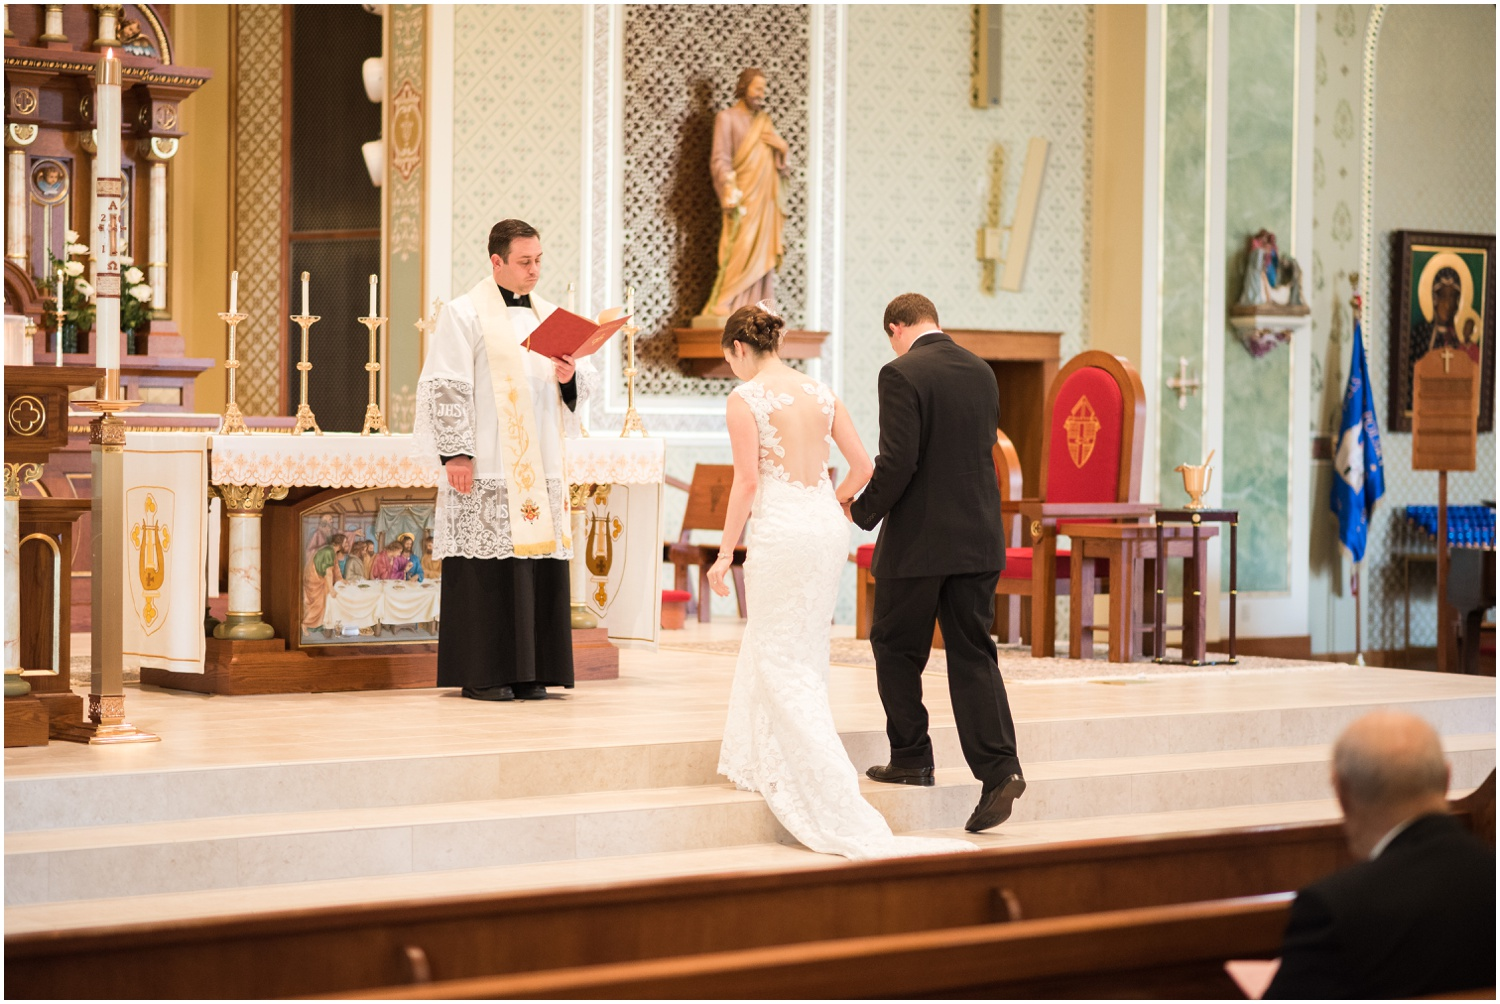 WISCONSIN DELLS WEDDING PHOTOGRAPHER | ST. CECILIA CATHOLIC CHURCH | WISCONSIN DELLS, WI | WEDDING_0235.jpg